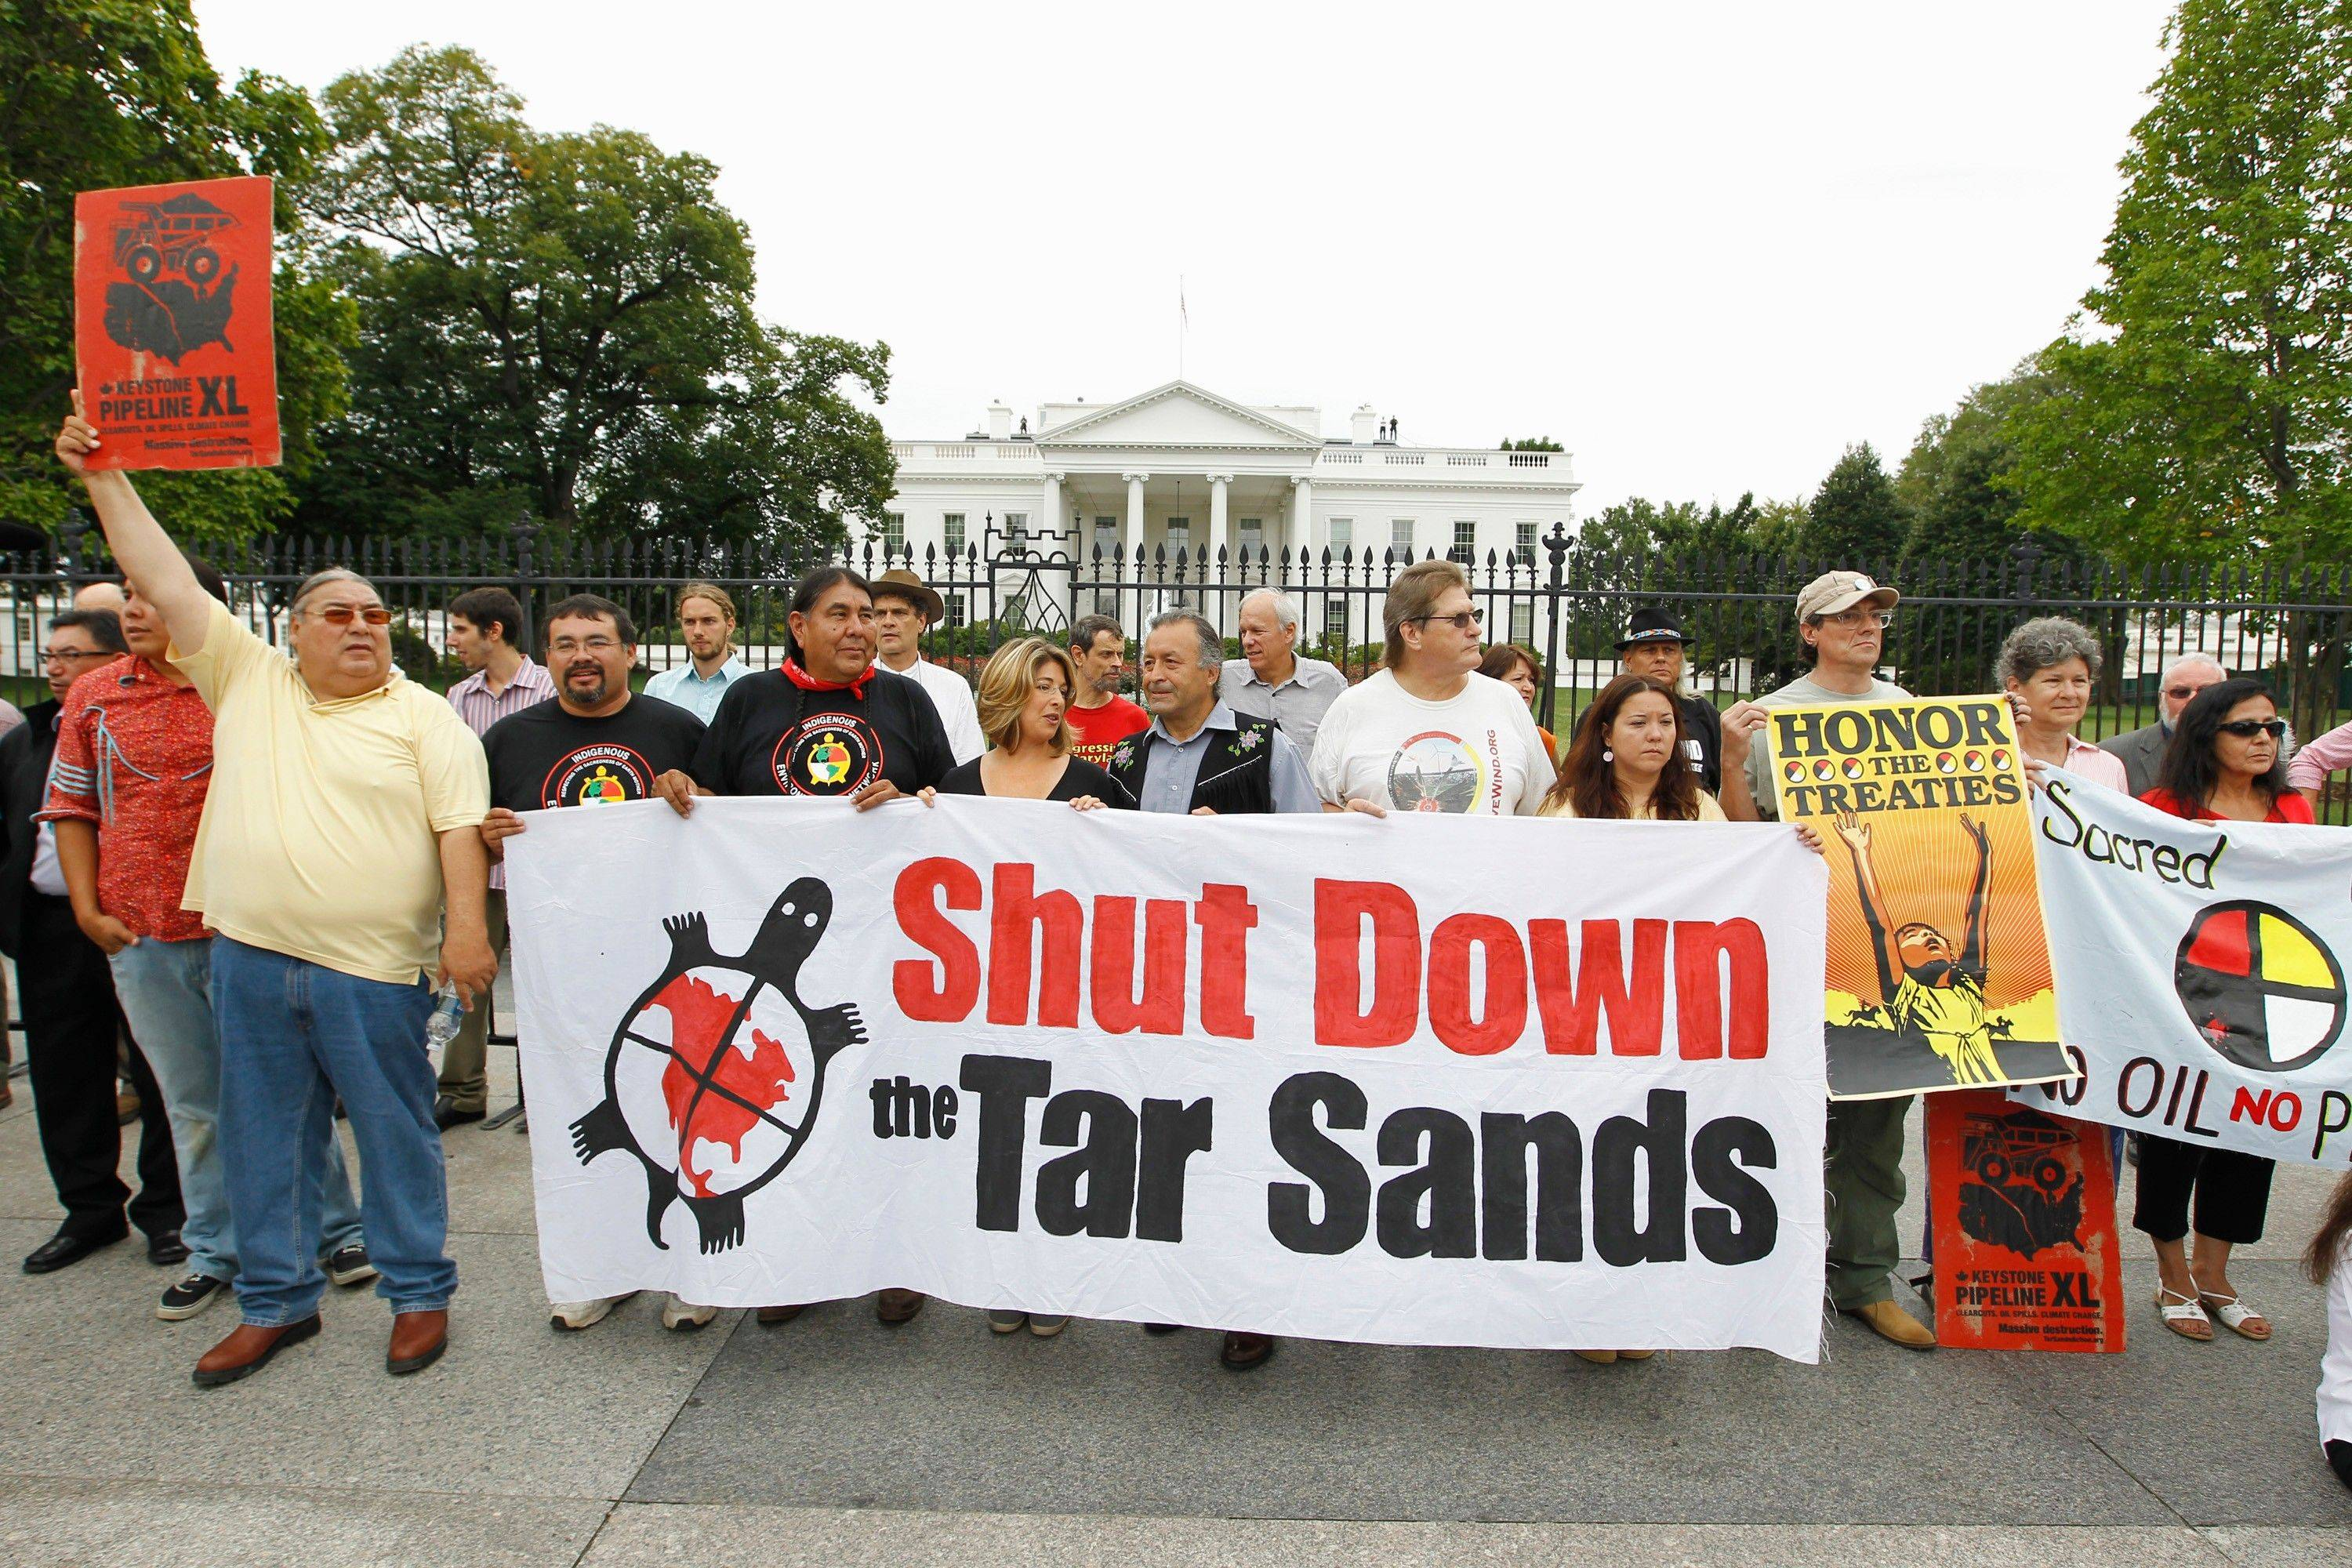 Demonstrators protest the Keystone XL Pipeline project in front of the White House in Washington on Sept. 2. The high-profile anti-pipeline campaign included repeated arrests of activists outside the White House.